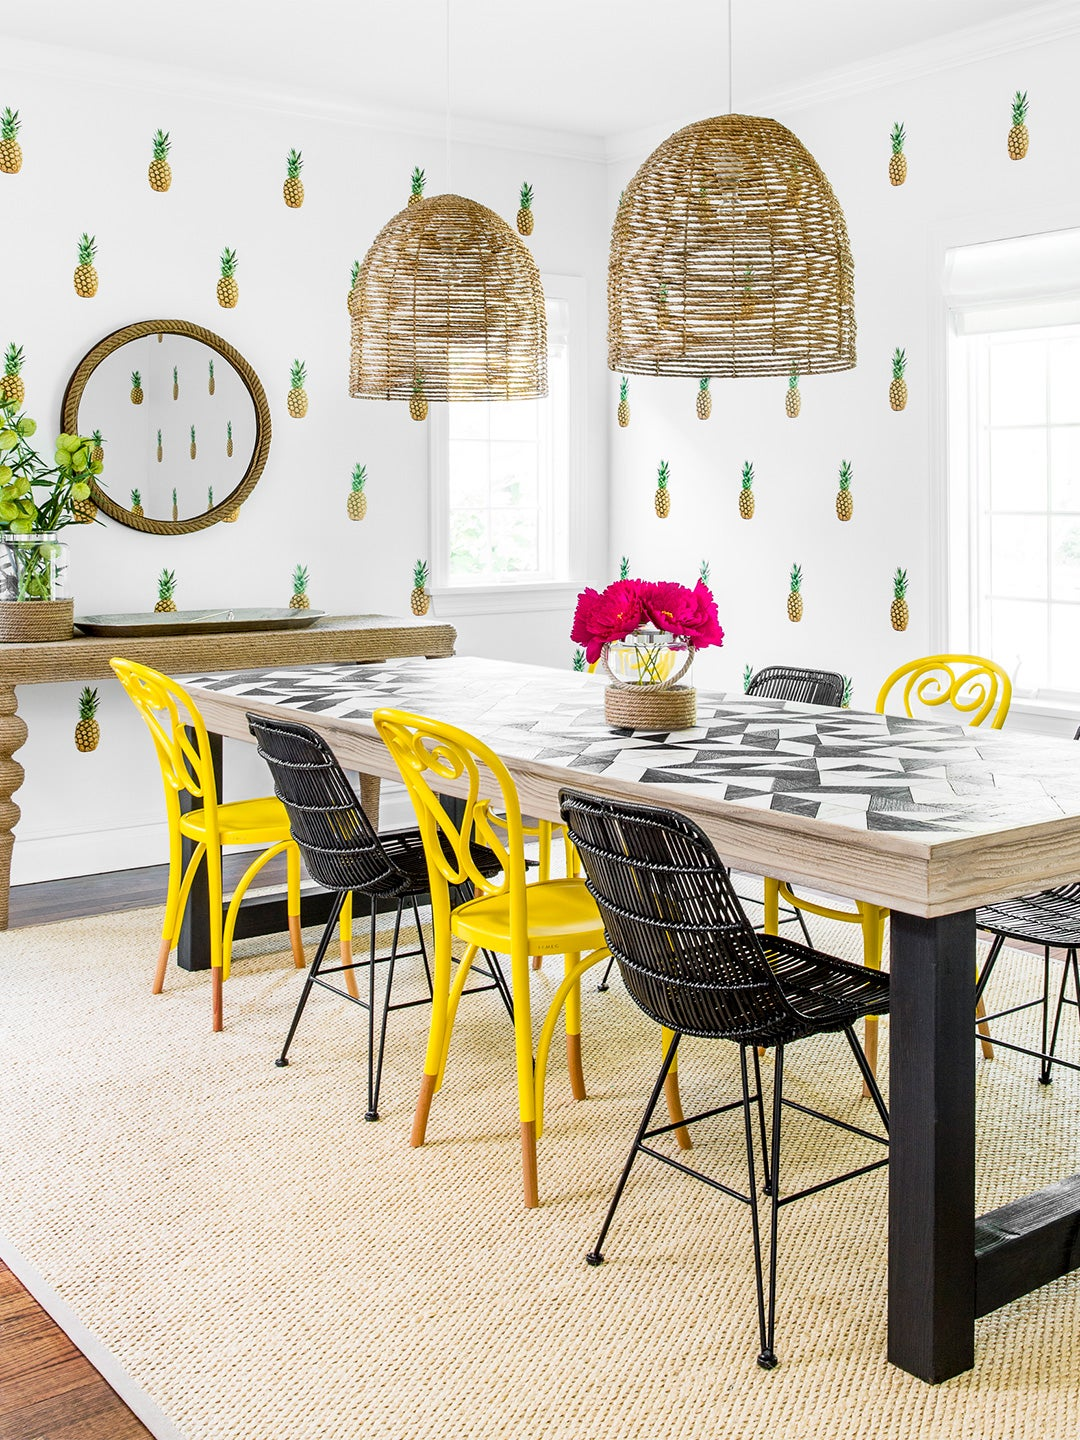 00-FEATURE-whimsical-beach-house-makeover-domino